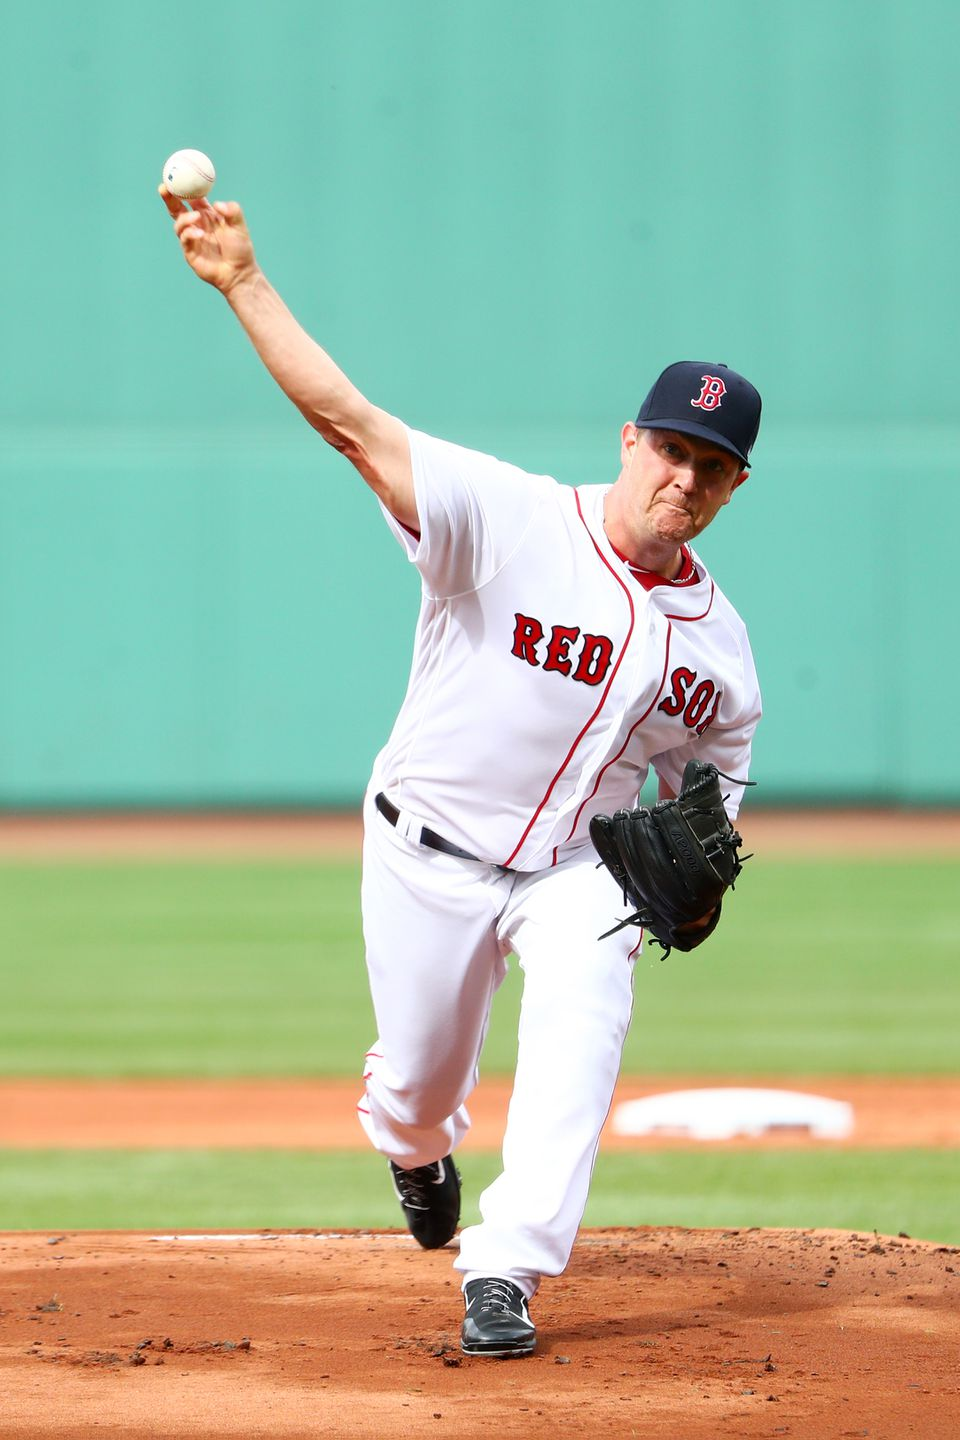 Steven Wright appeared in five games in 2017 before undergoing cartilage reconstruction surgery.